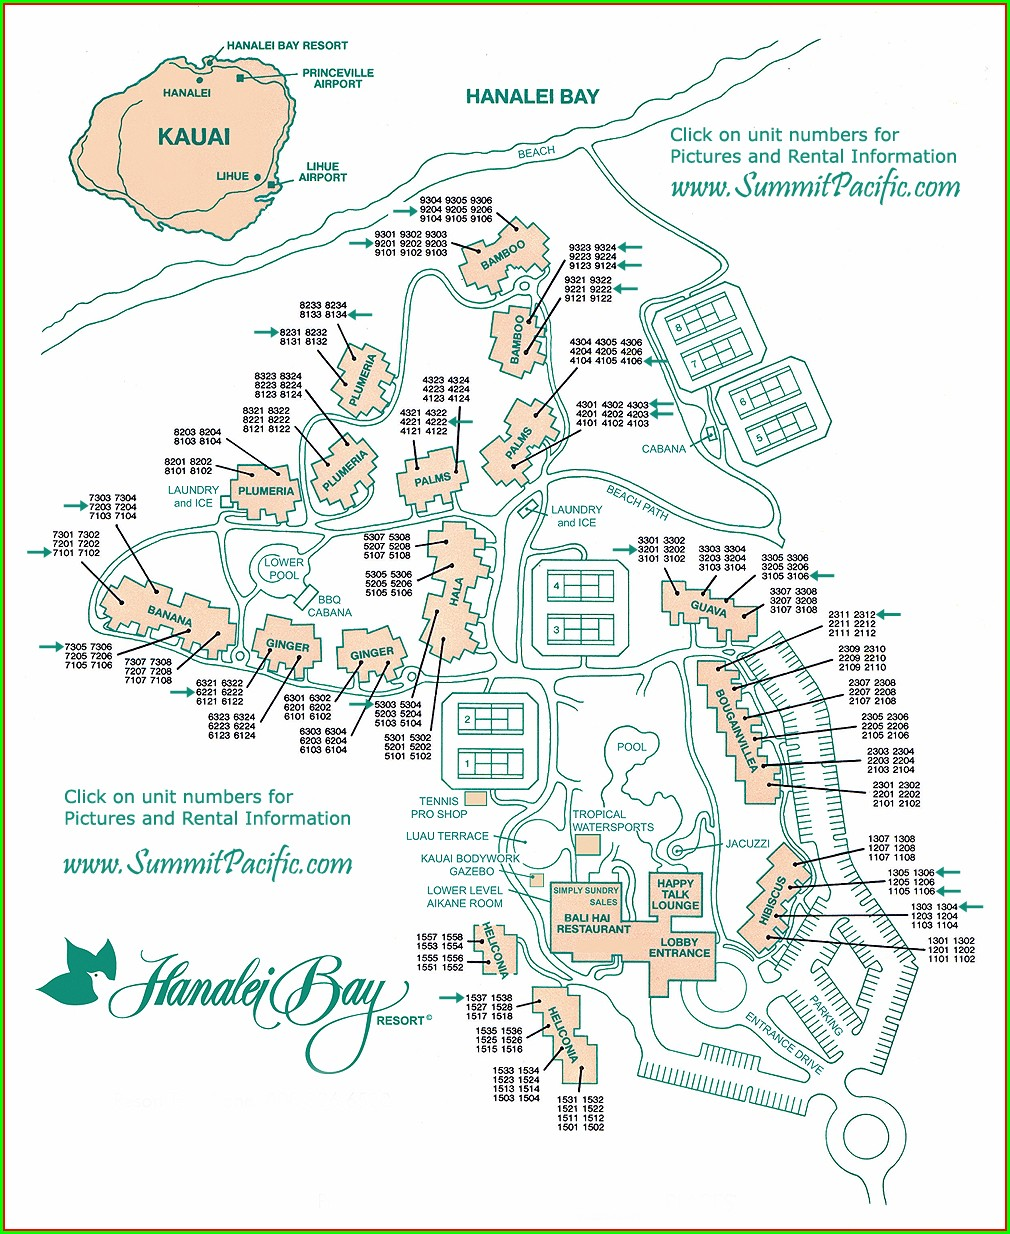 Hanalei Bay Resort Property Map